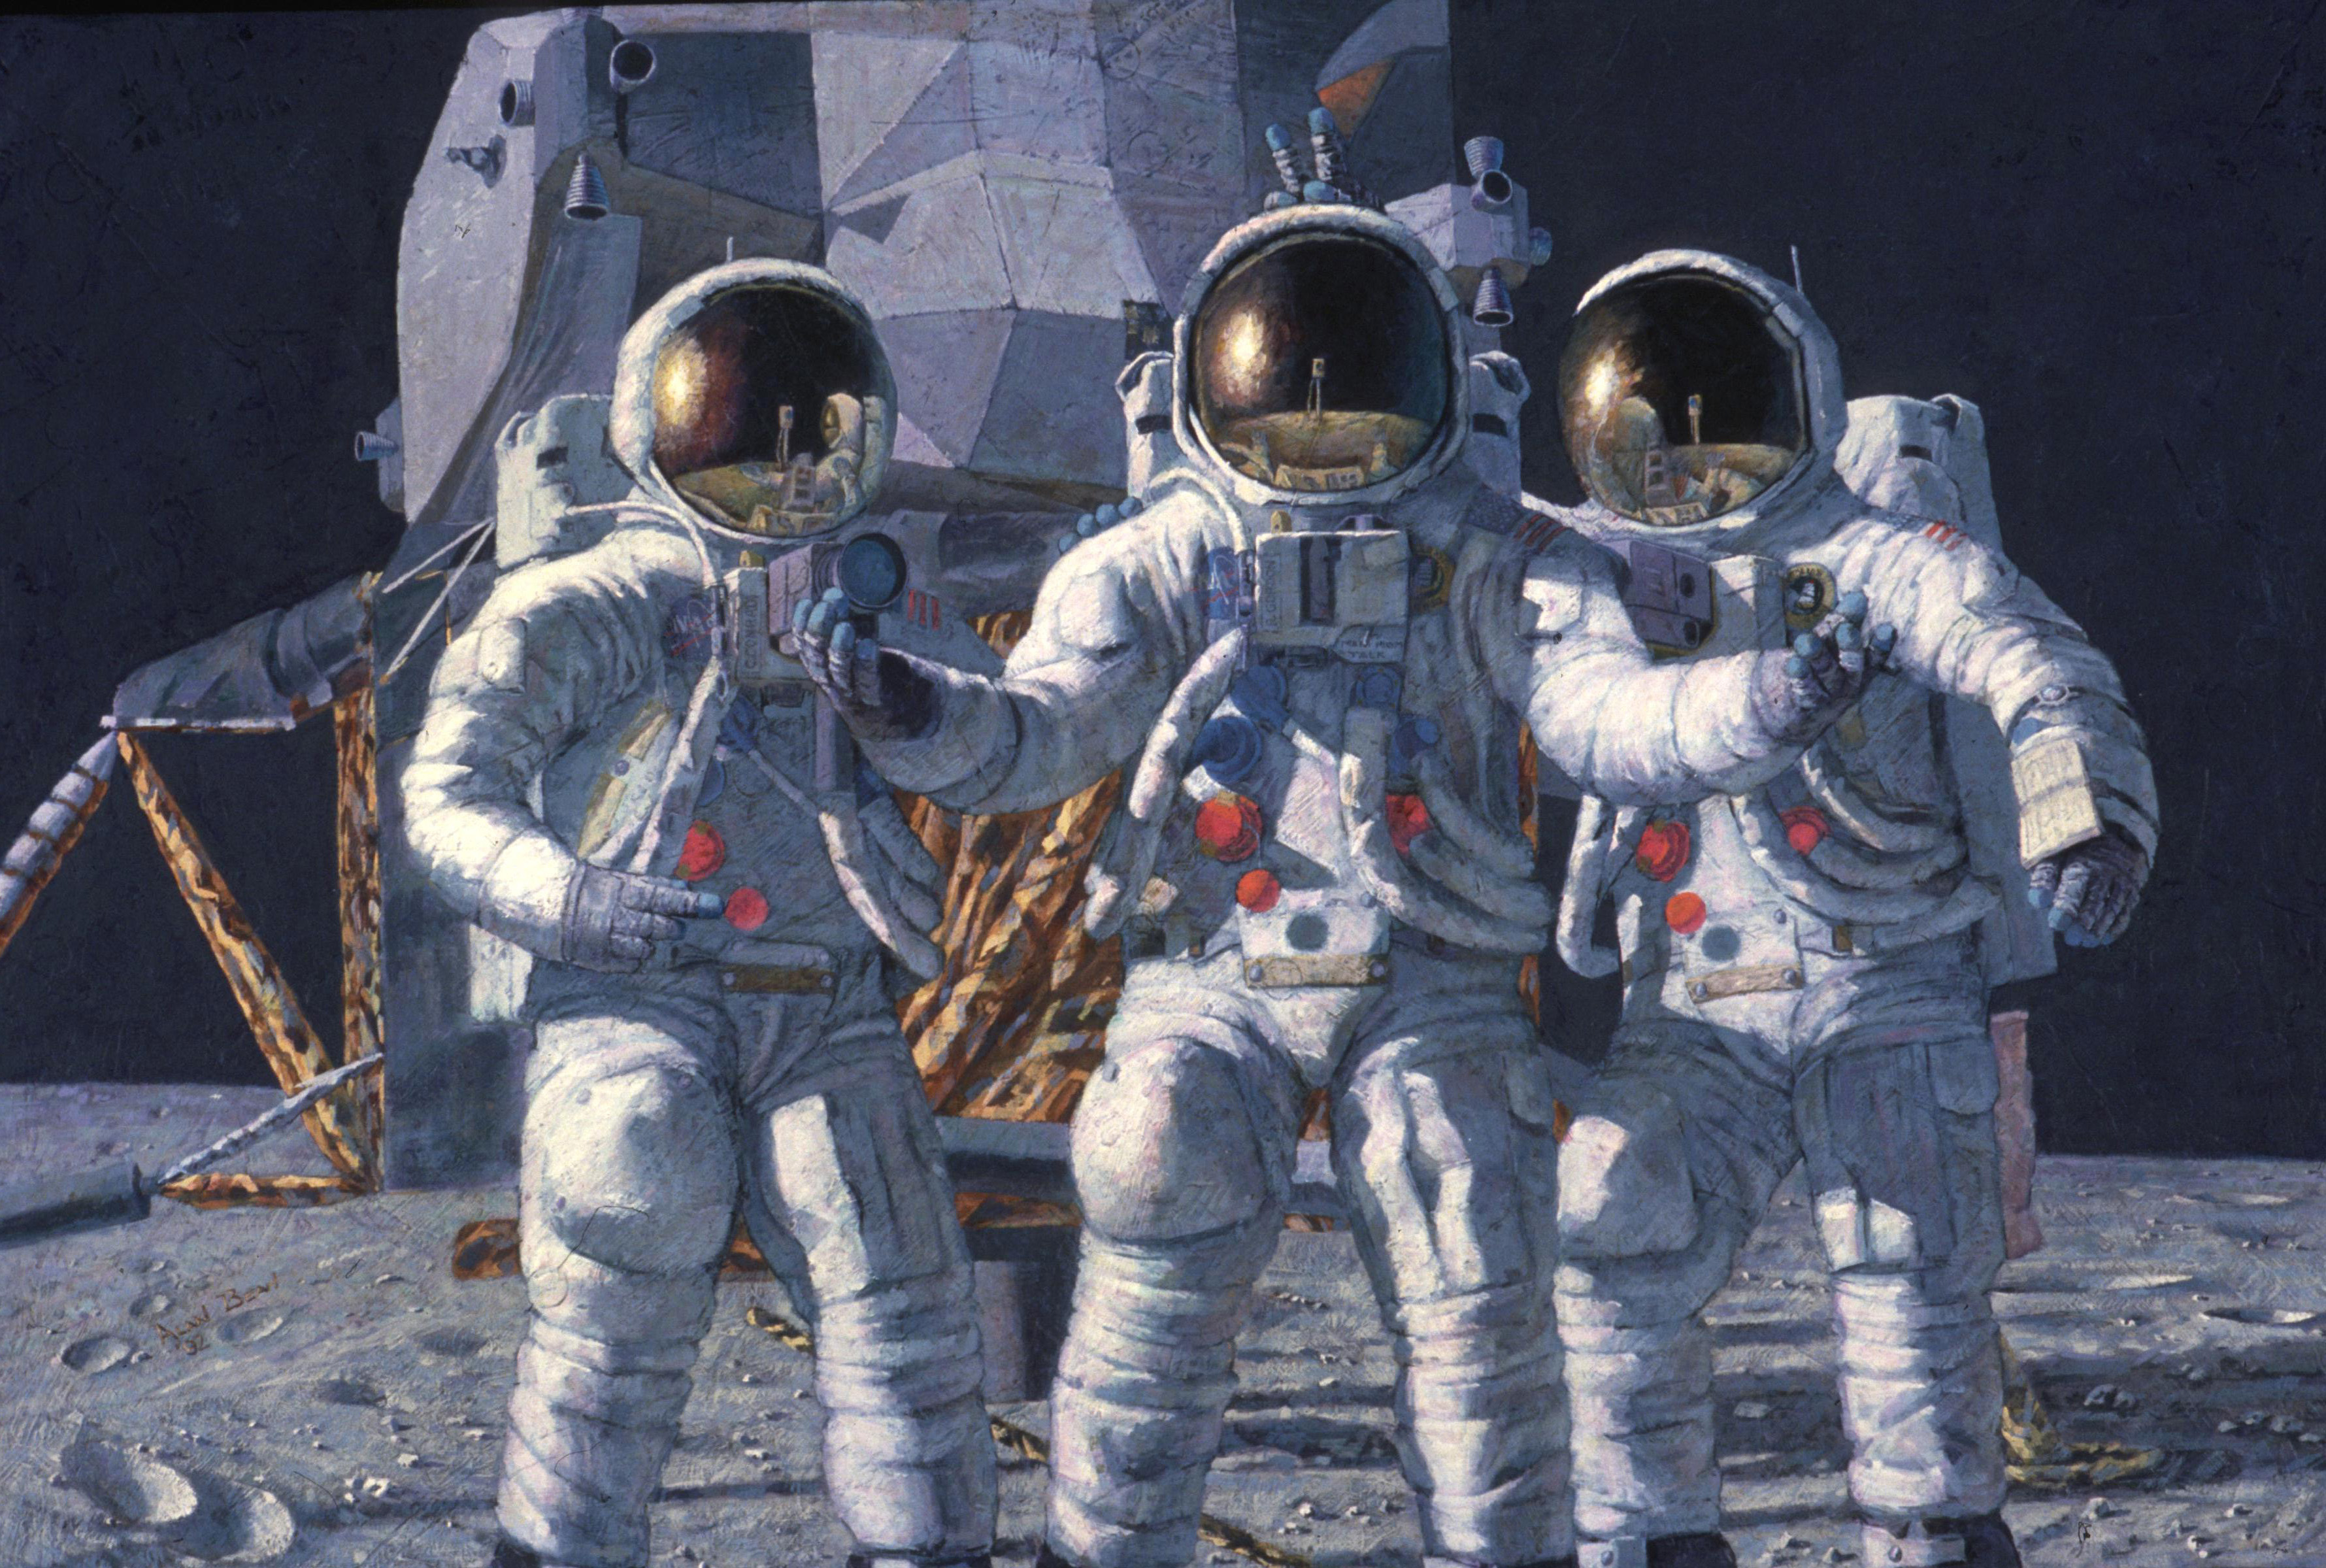 <em>The Fantasy,</em> a painting by Alan Bean, showing the entire crew of Apollo 12 on the Moon. CMP Dick Gordon, center, appears surprised to be there.